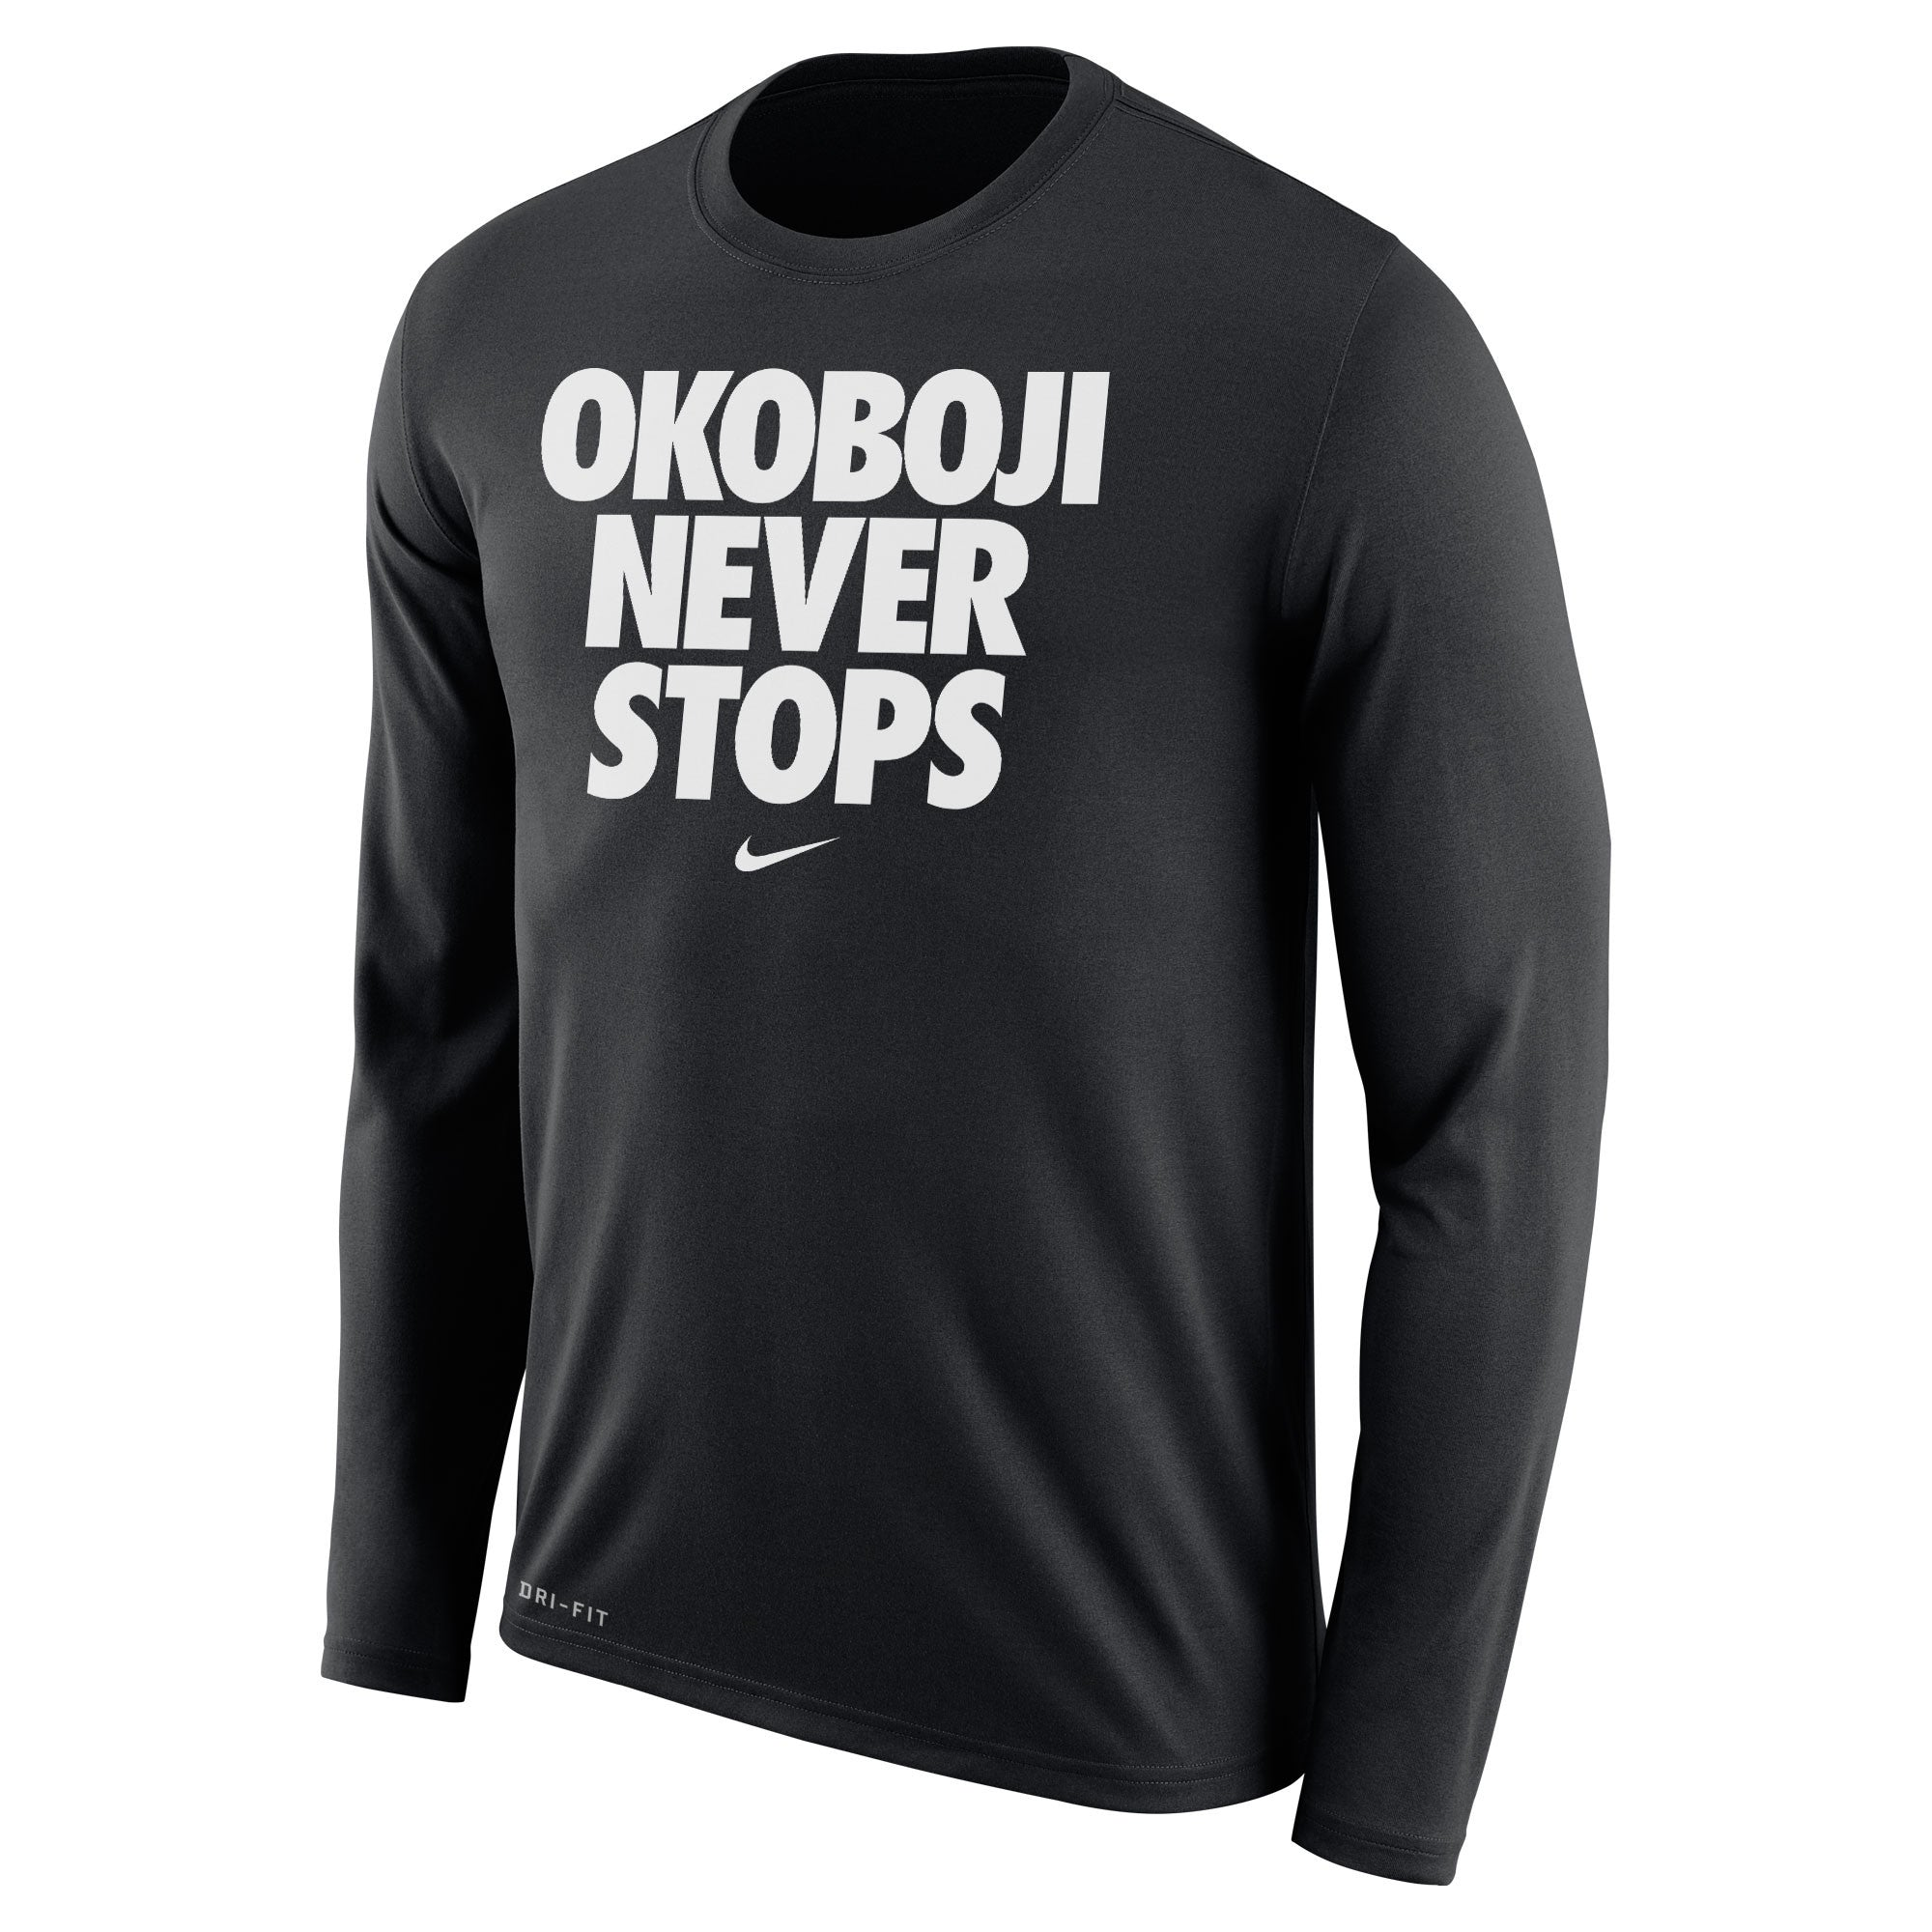 OKOBOJI NEVER STOPS Long-sleeved Tee (Black)